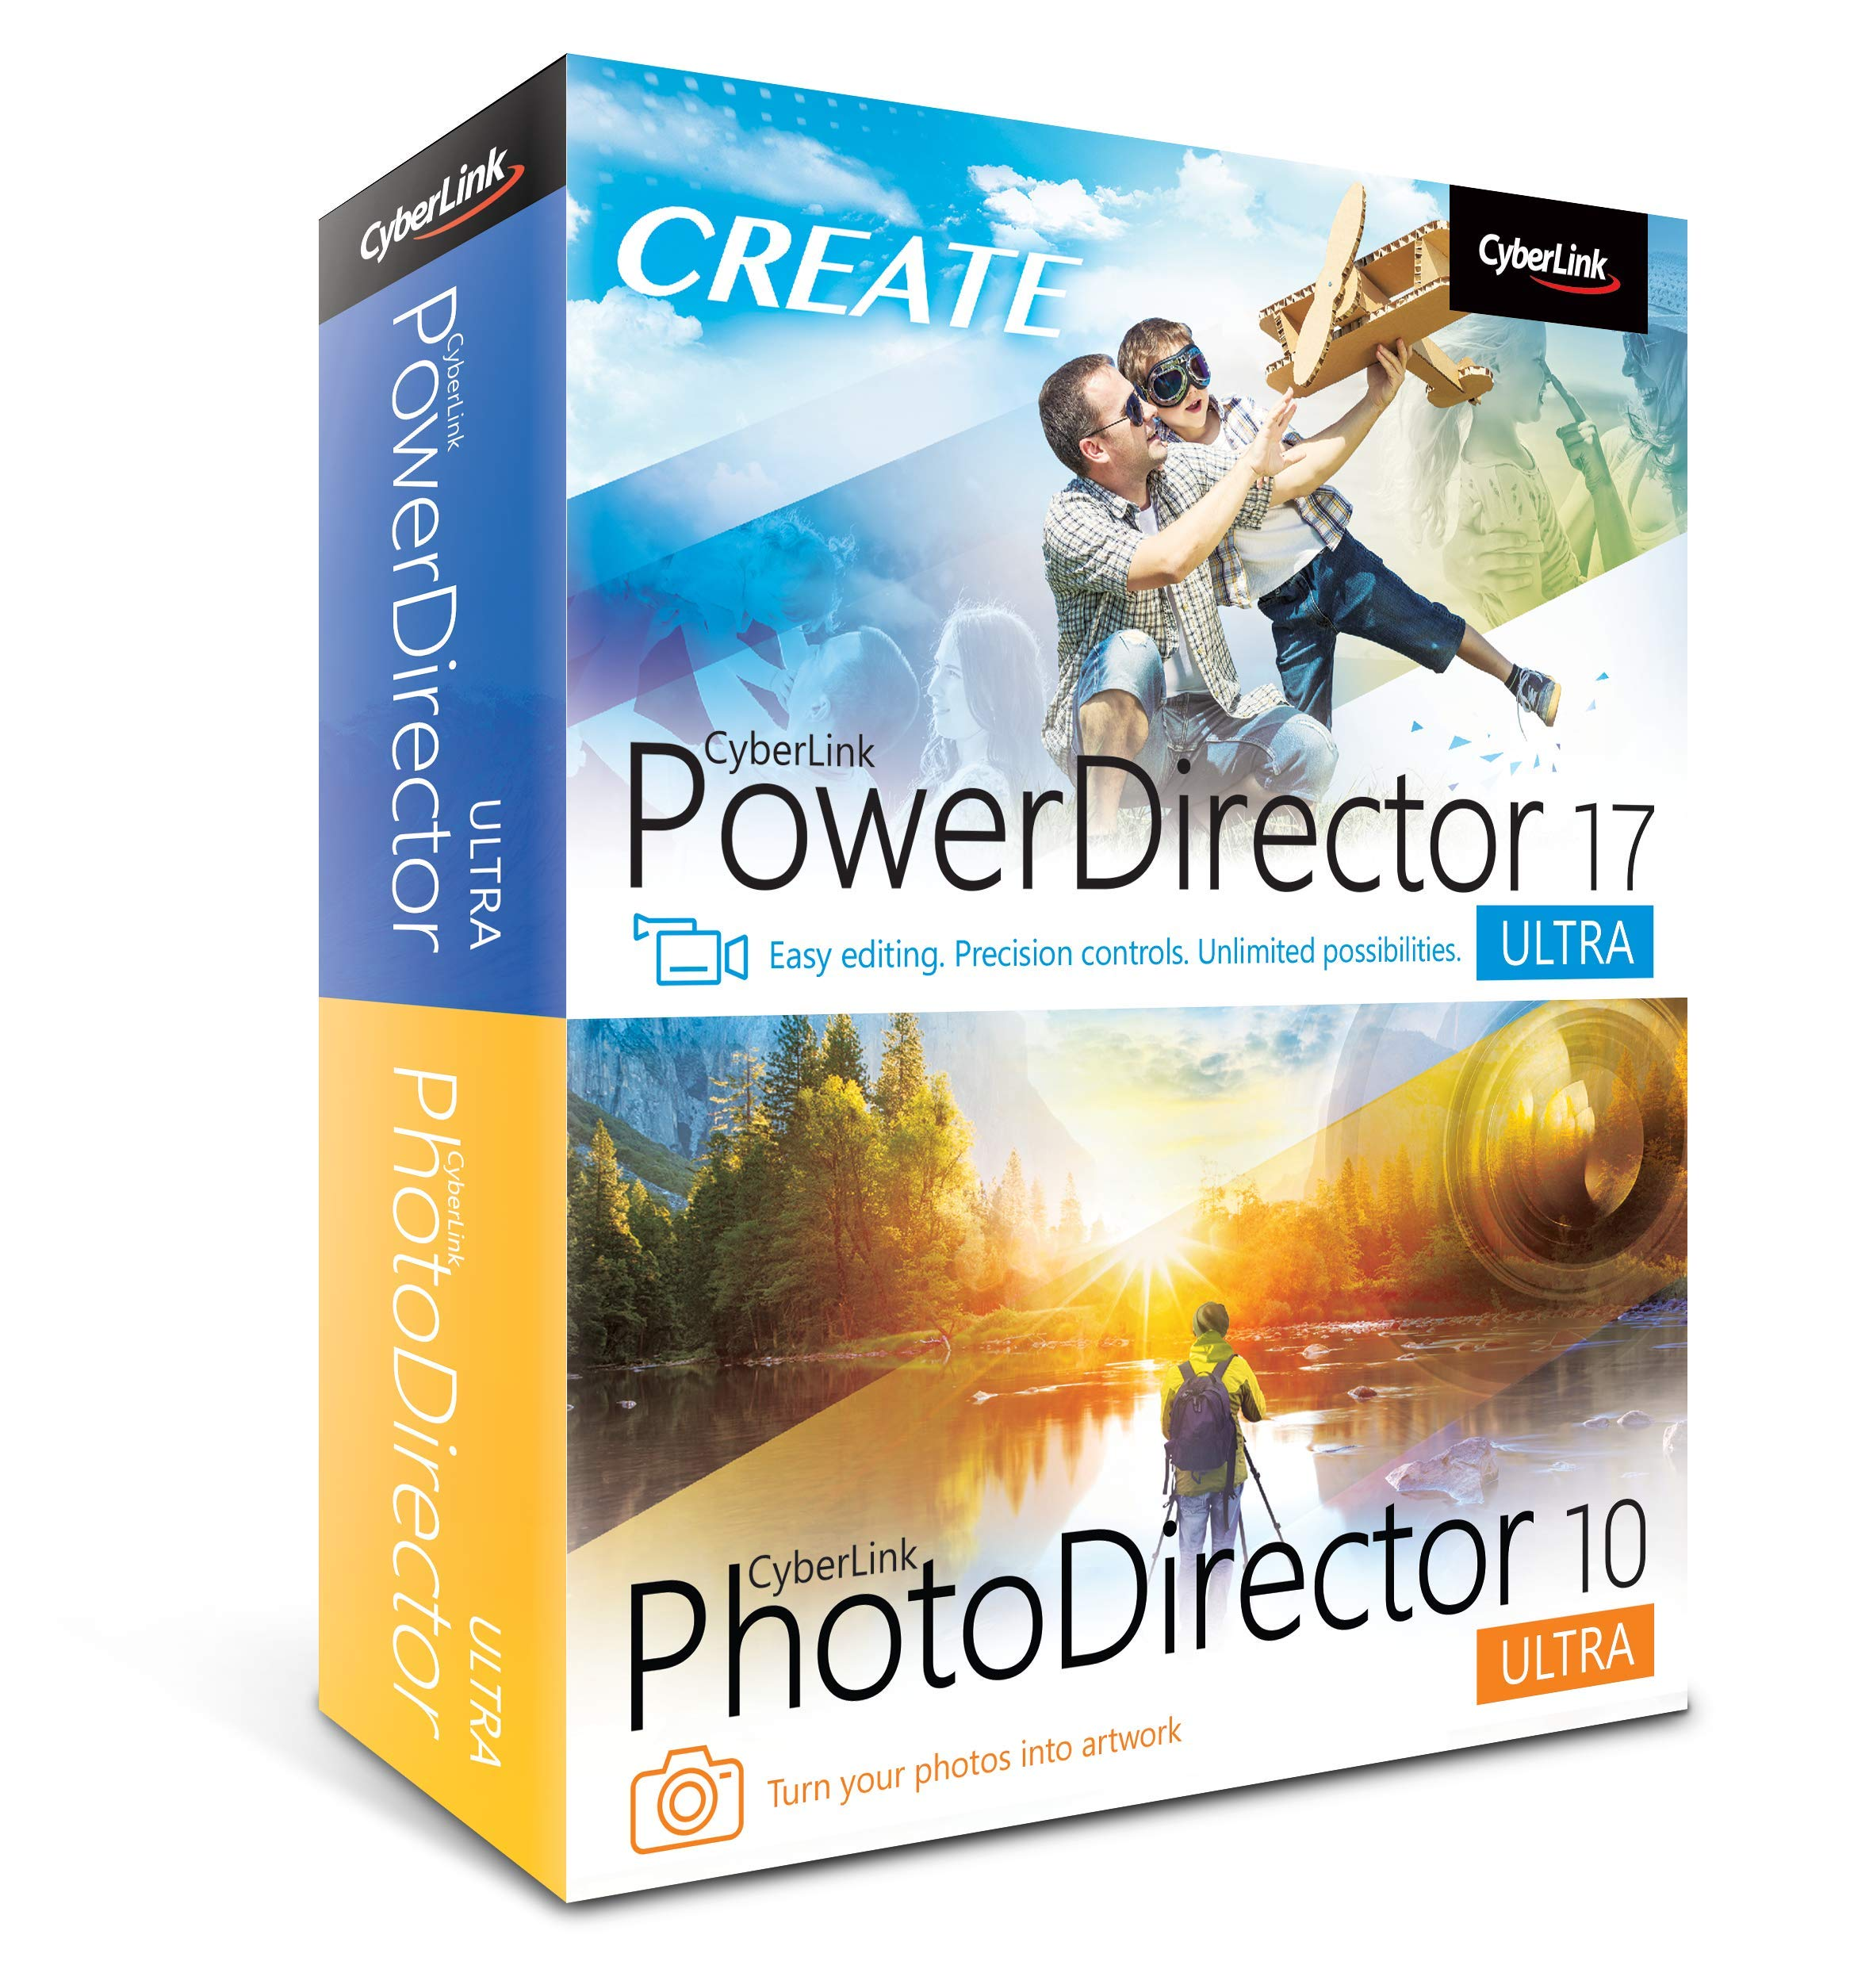 Cyberlink PowerDirector 17 and PhotoDirector 10 Ultra by Cyberlink